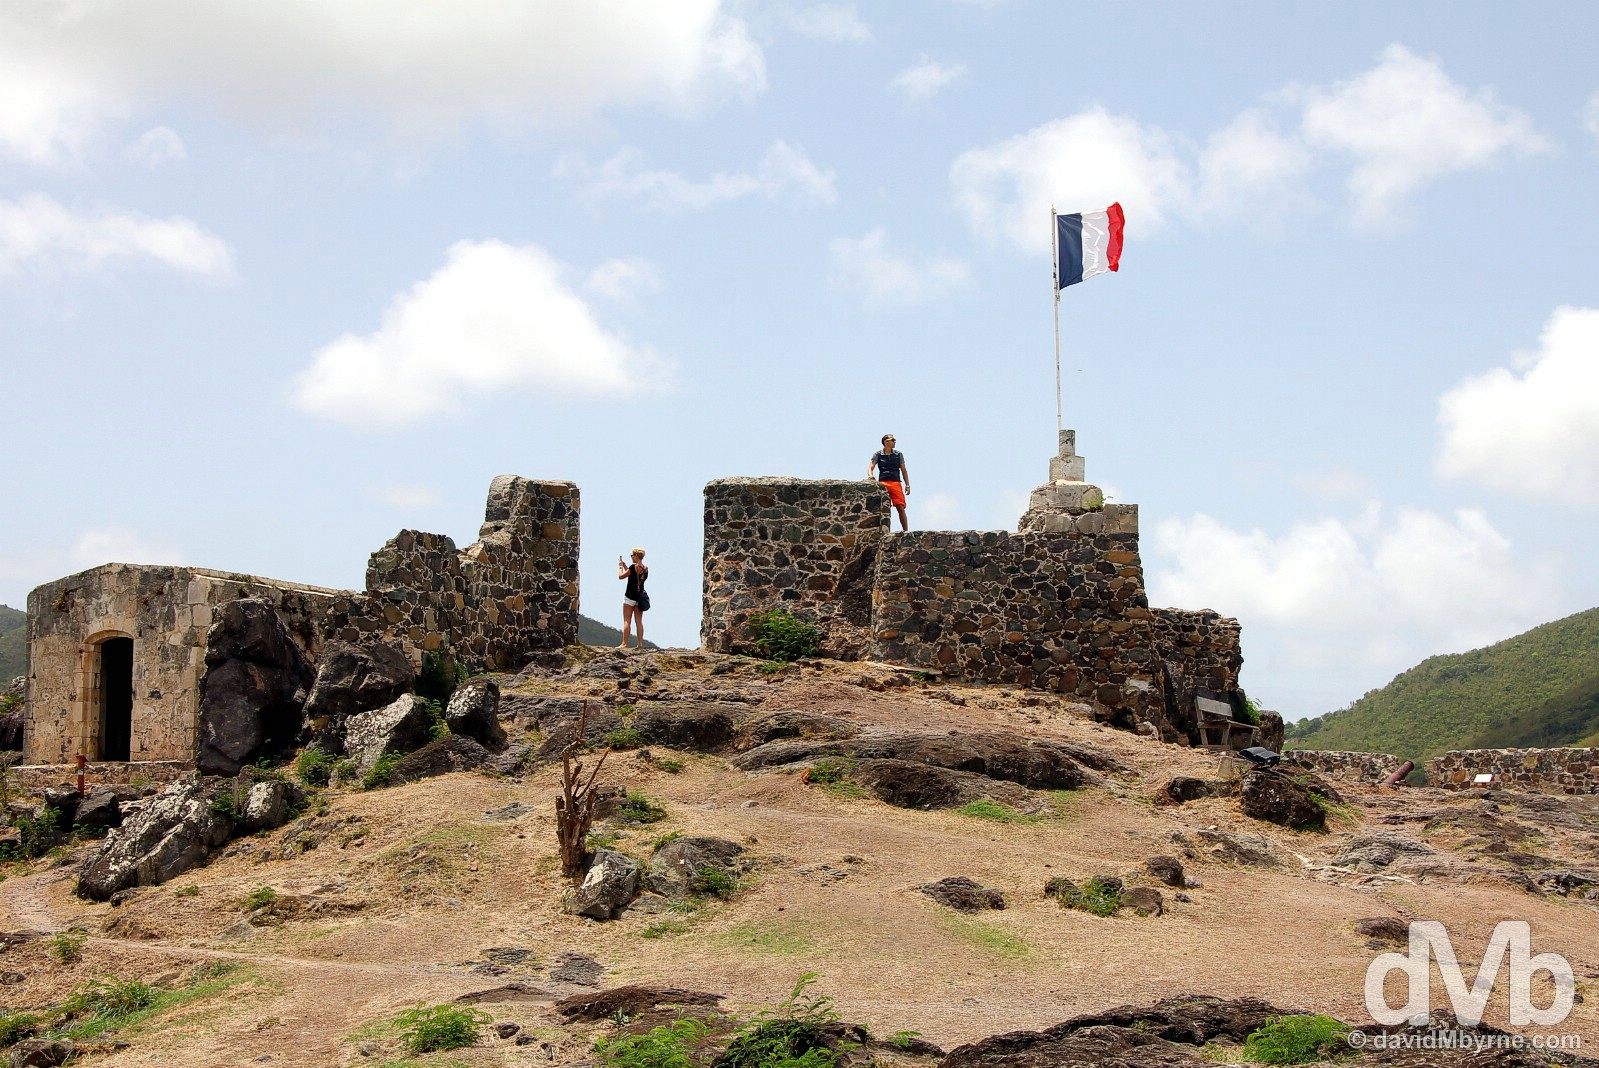 Fort Louis overlooking Marigot, Saint Martin, Lesser Antilles. June 8, 2015.